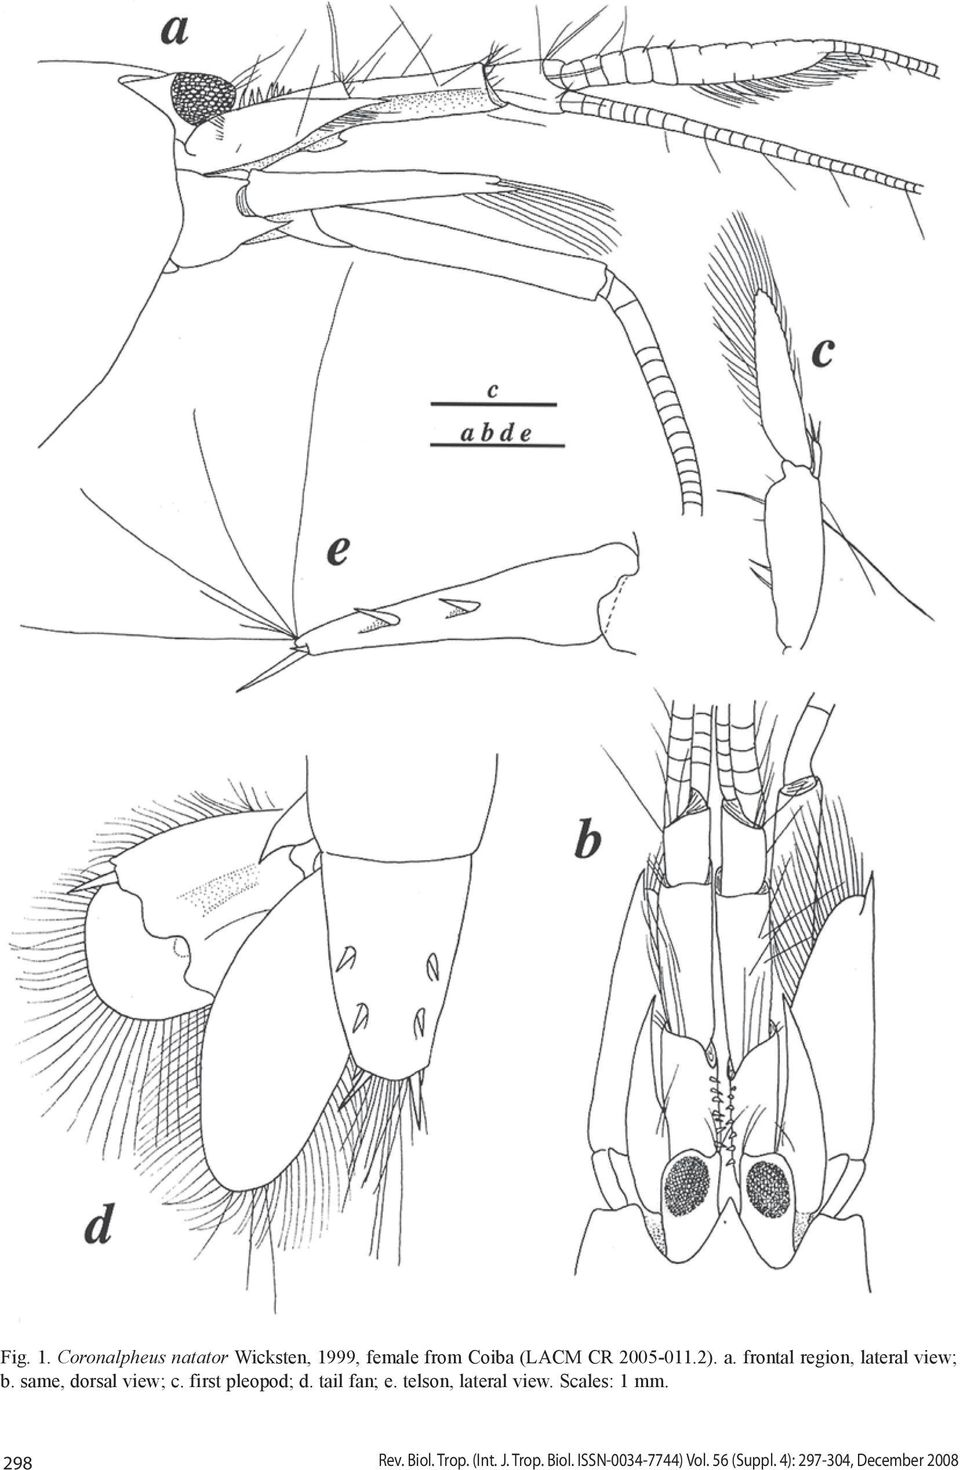 a. frontal region, lateral view; b. same, dorsal view; c. first pleopod; d.